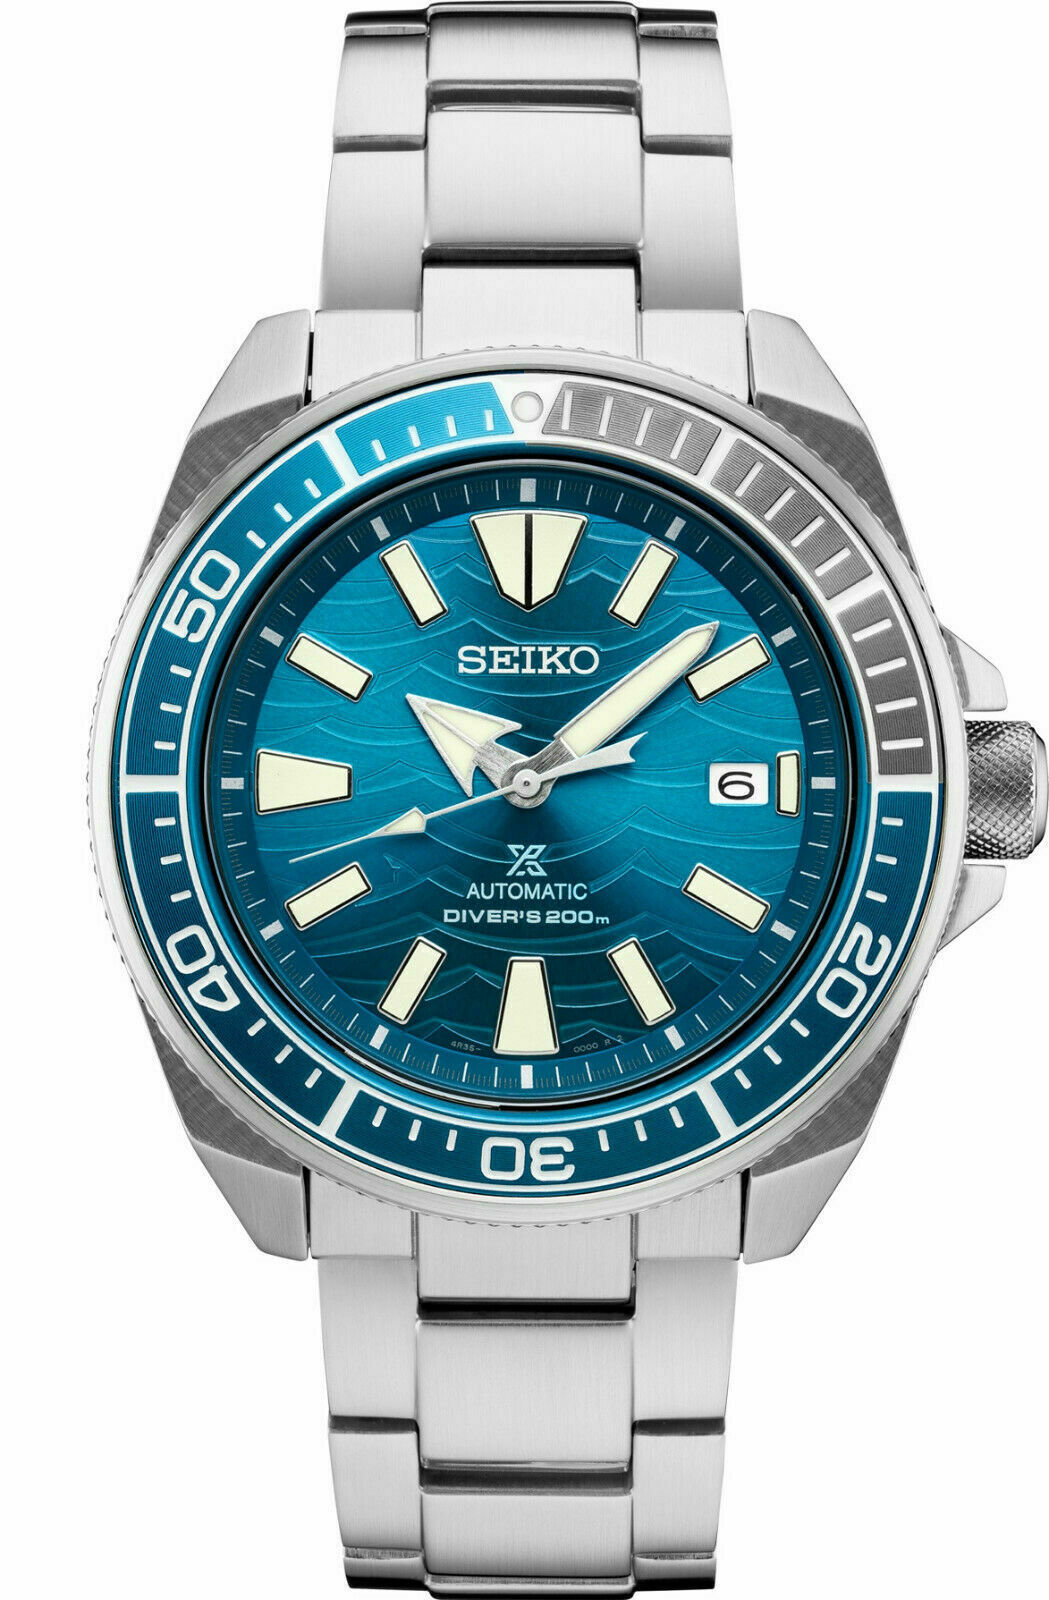 Primary image for Seiko Automatic Prospex Samurai Blue Wave Divers 200M Men's Watch SRPD23